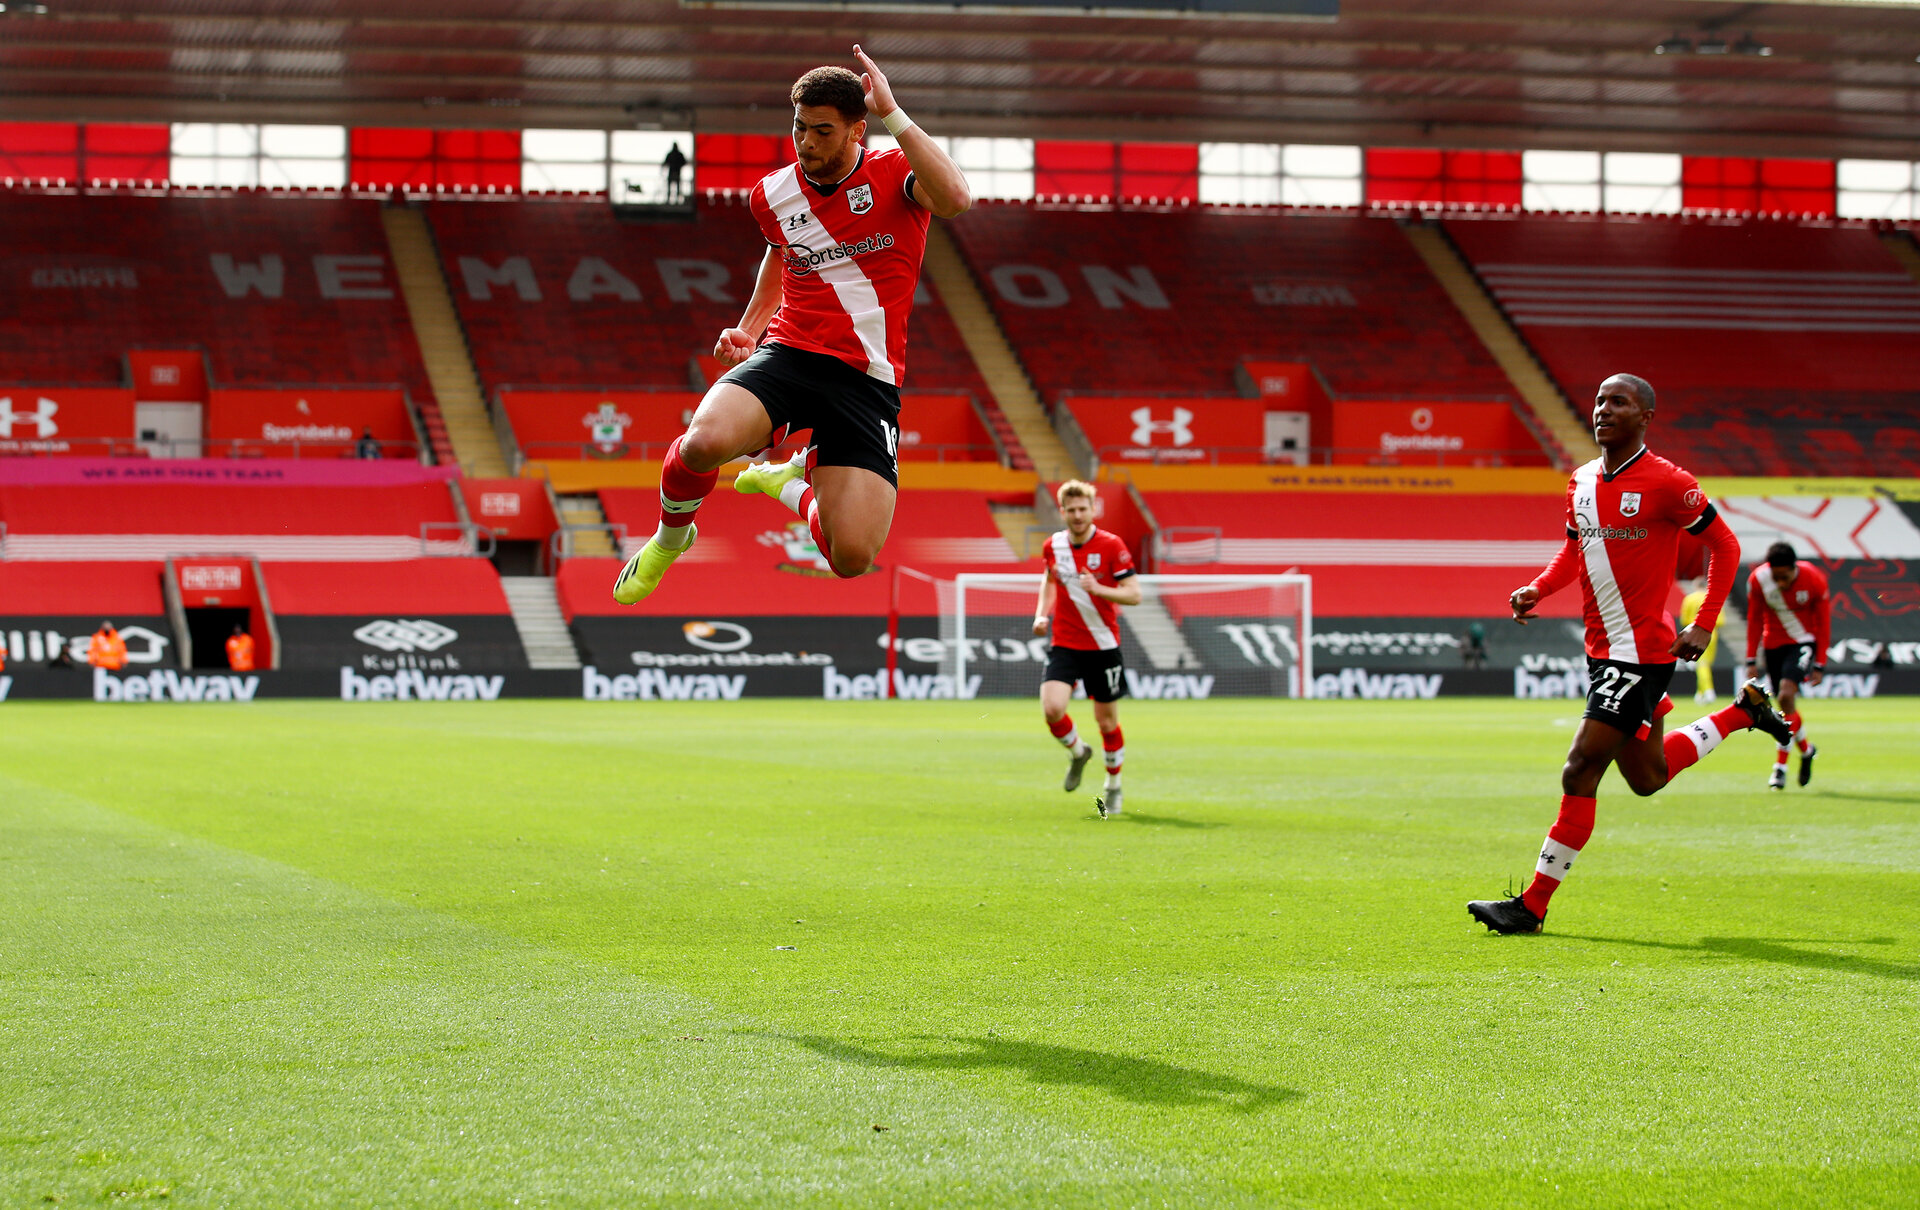 SOUTHAMPTON, ENGLAND - MARCH 14: Che Adams of Southampton celebrates after scoring to make it 1-1 during the Premier League match between Southampton and Brighton & Hove Albion at St Mary's Stadium on March 14, 2021 in Southampton, England. Sporting stadiums around the UK remain under strict restrictions due to the Coronavirus Pandemic as Government social distancing laws prohibit fans inside venues resulting in games being played behind closed doors. (Photo by Matt Watson/Southampton FC via Getty Images)